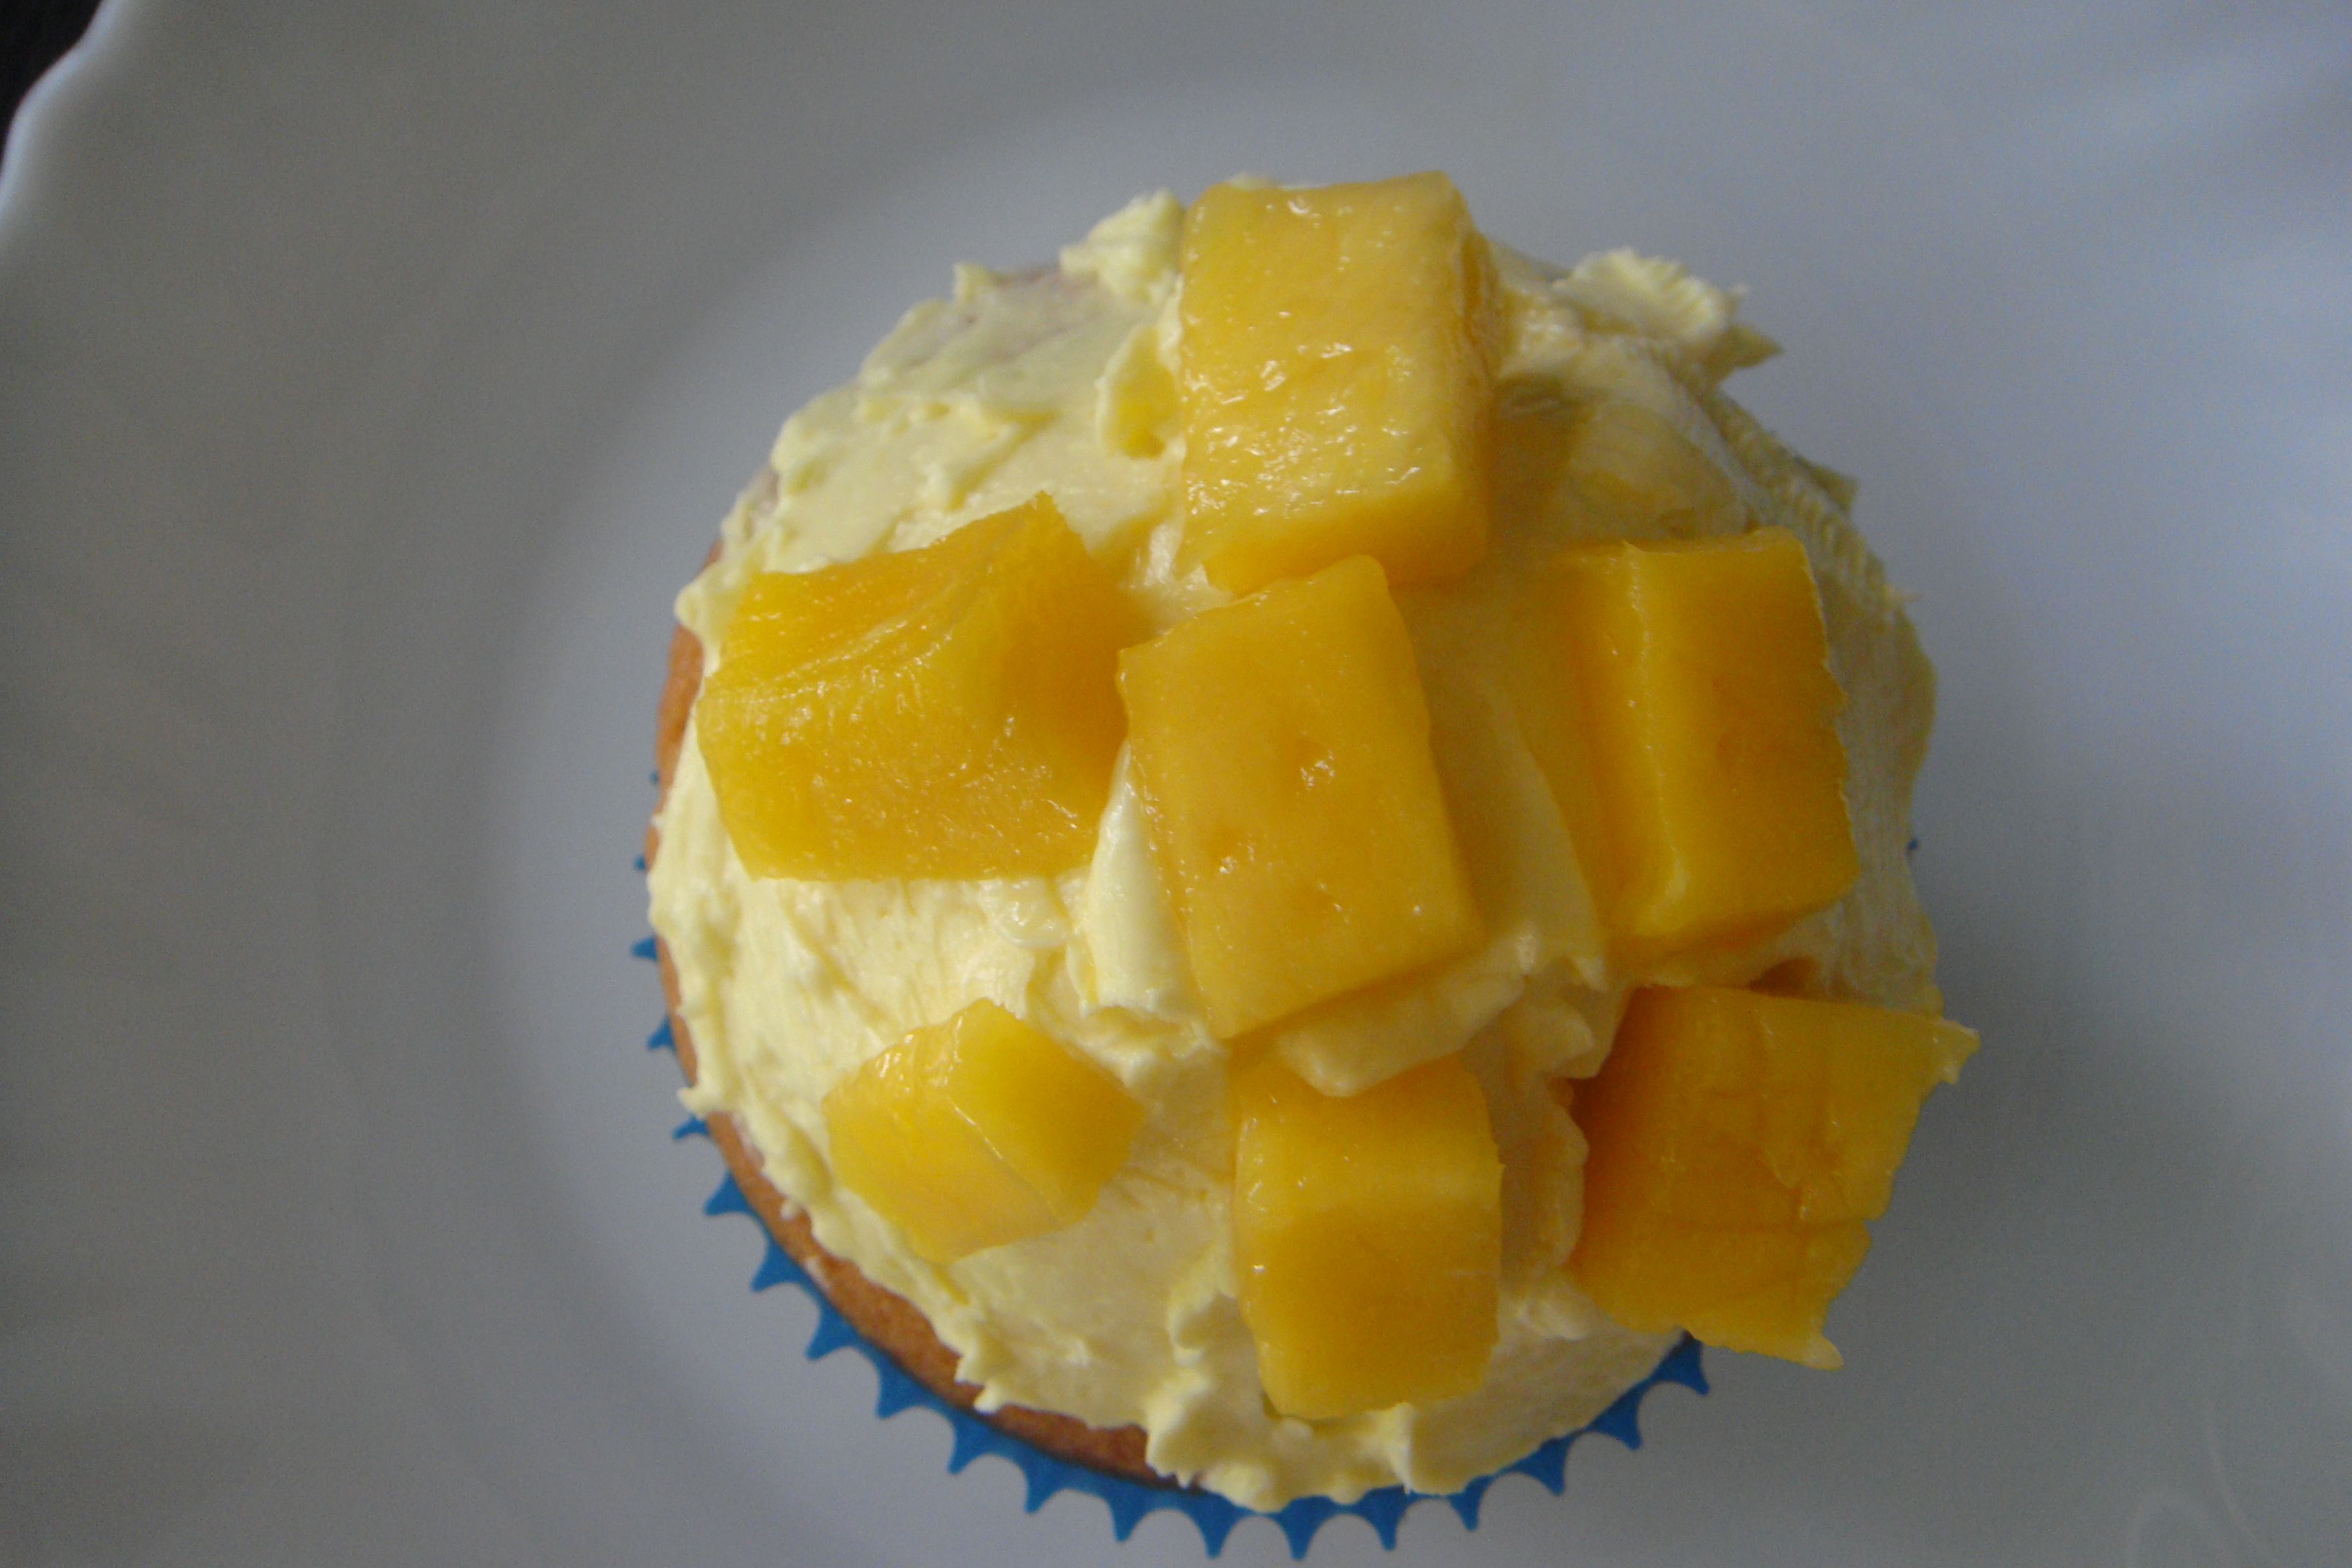 ... Vanilla Cupcakes with Mango Buttercream Frosting | eatnownownow